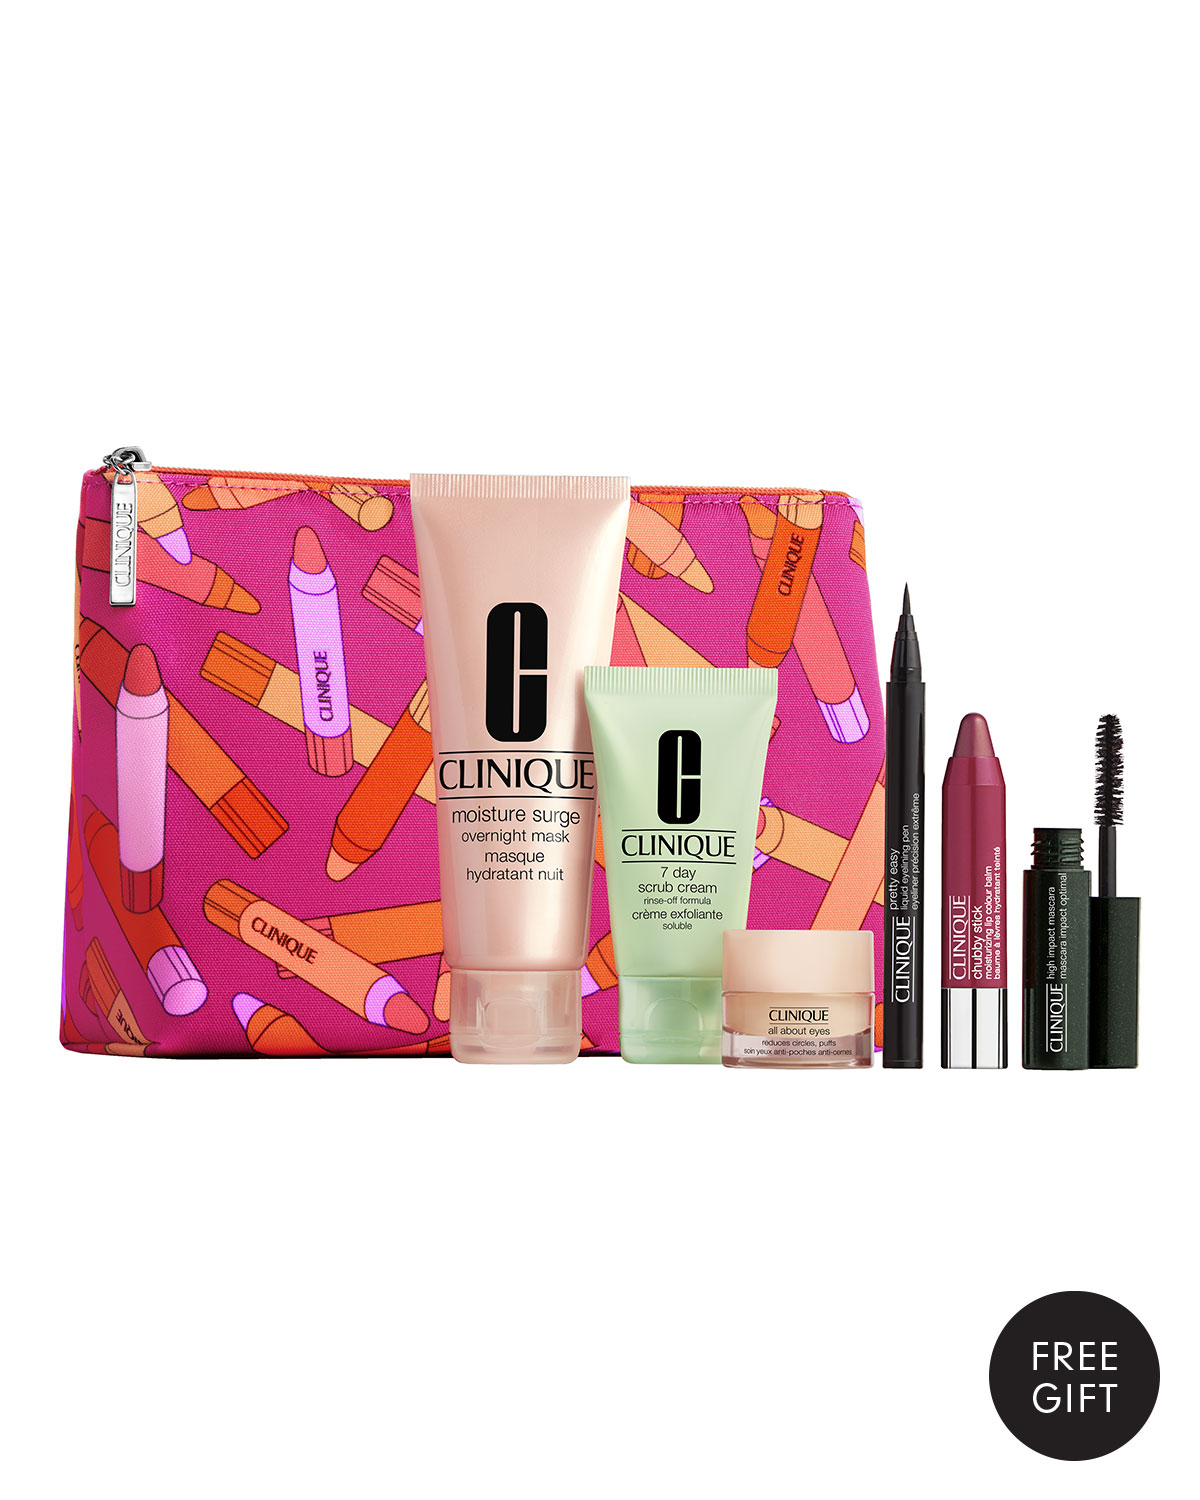 Clinique Yours with any $55 Clinique Purchase